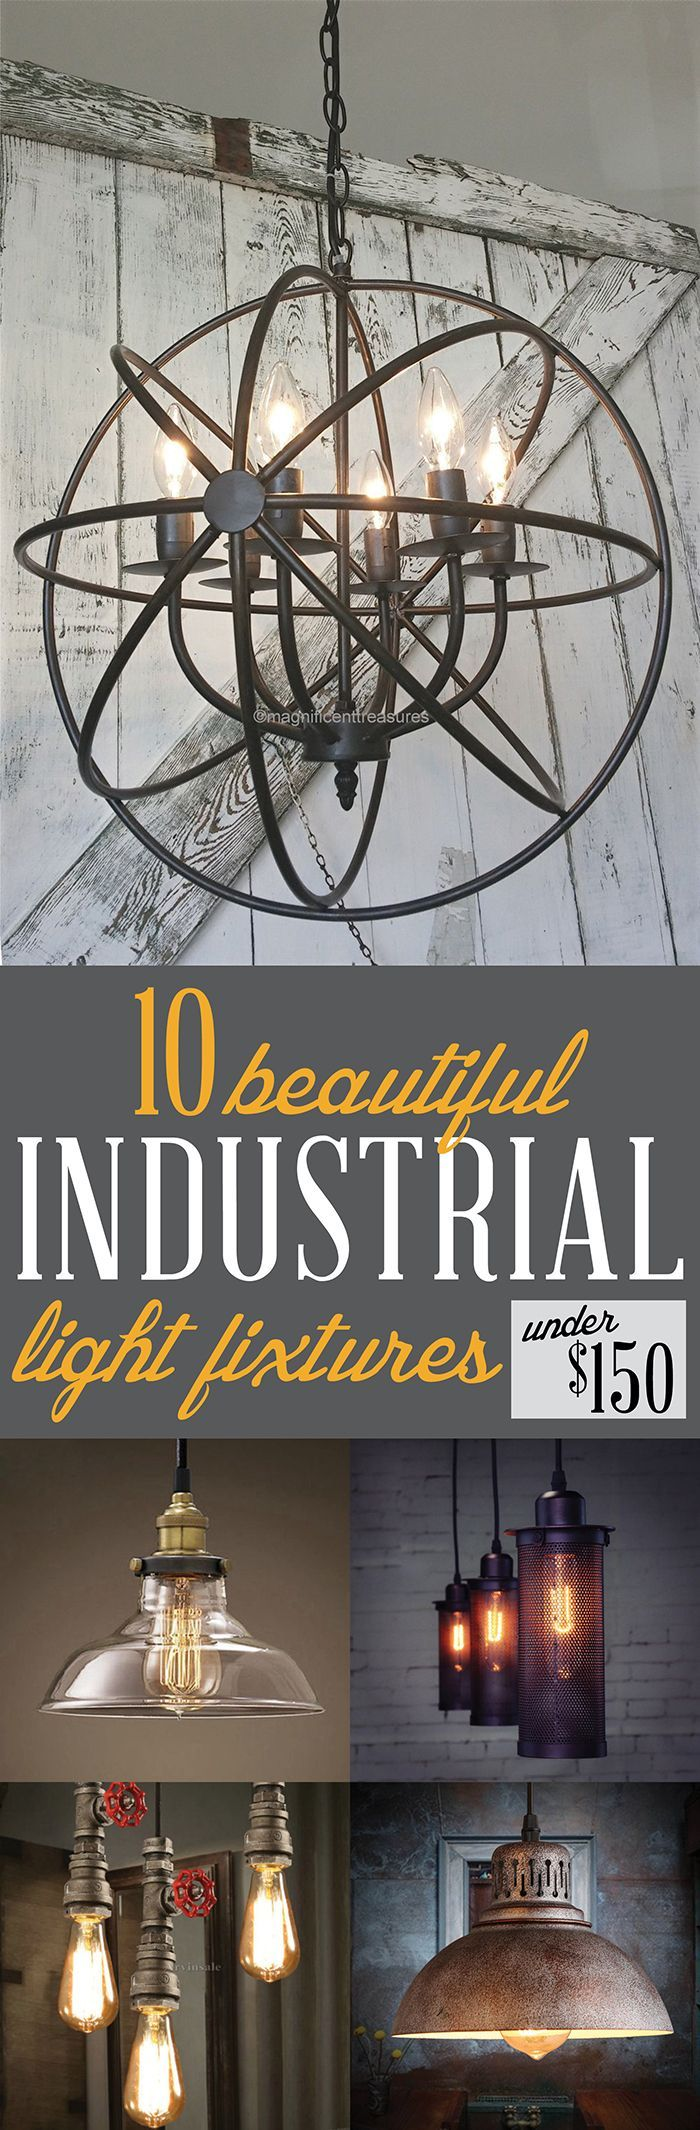 Industrial Light Fixtures Under 150